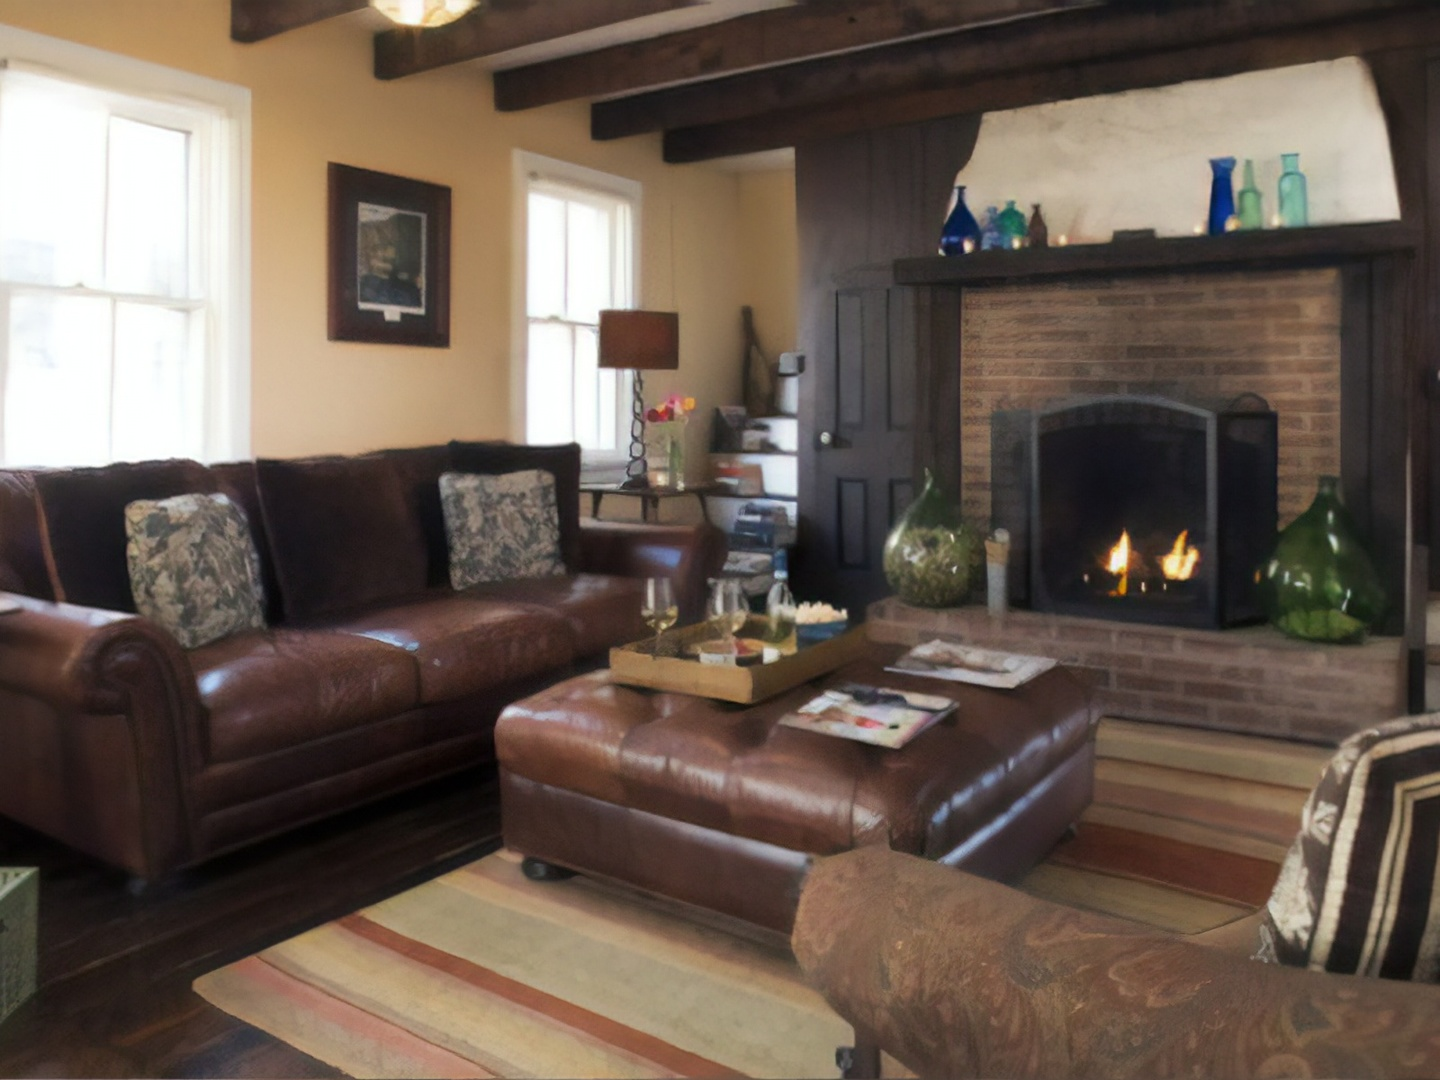 A brown leather couch in a living room filled with furniture and a fireplace at Pheasant Field Bed and Breakfast.